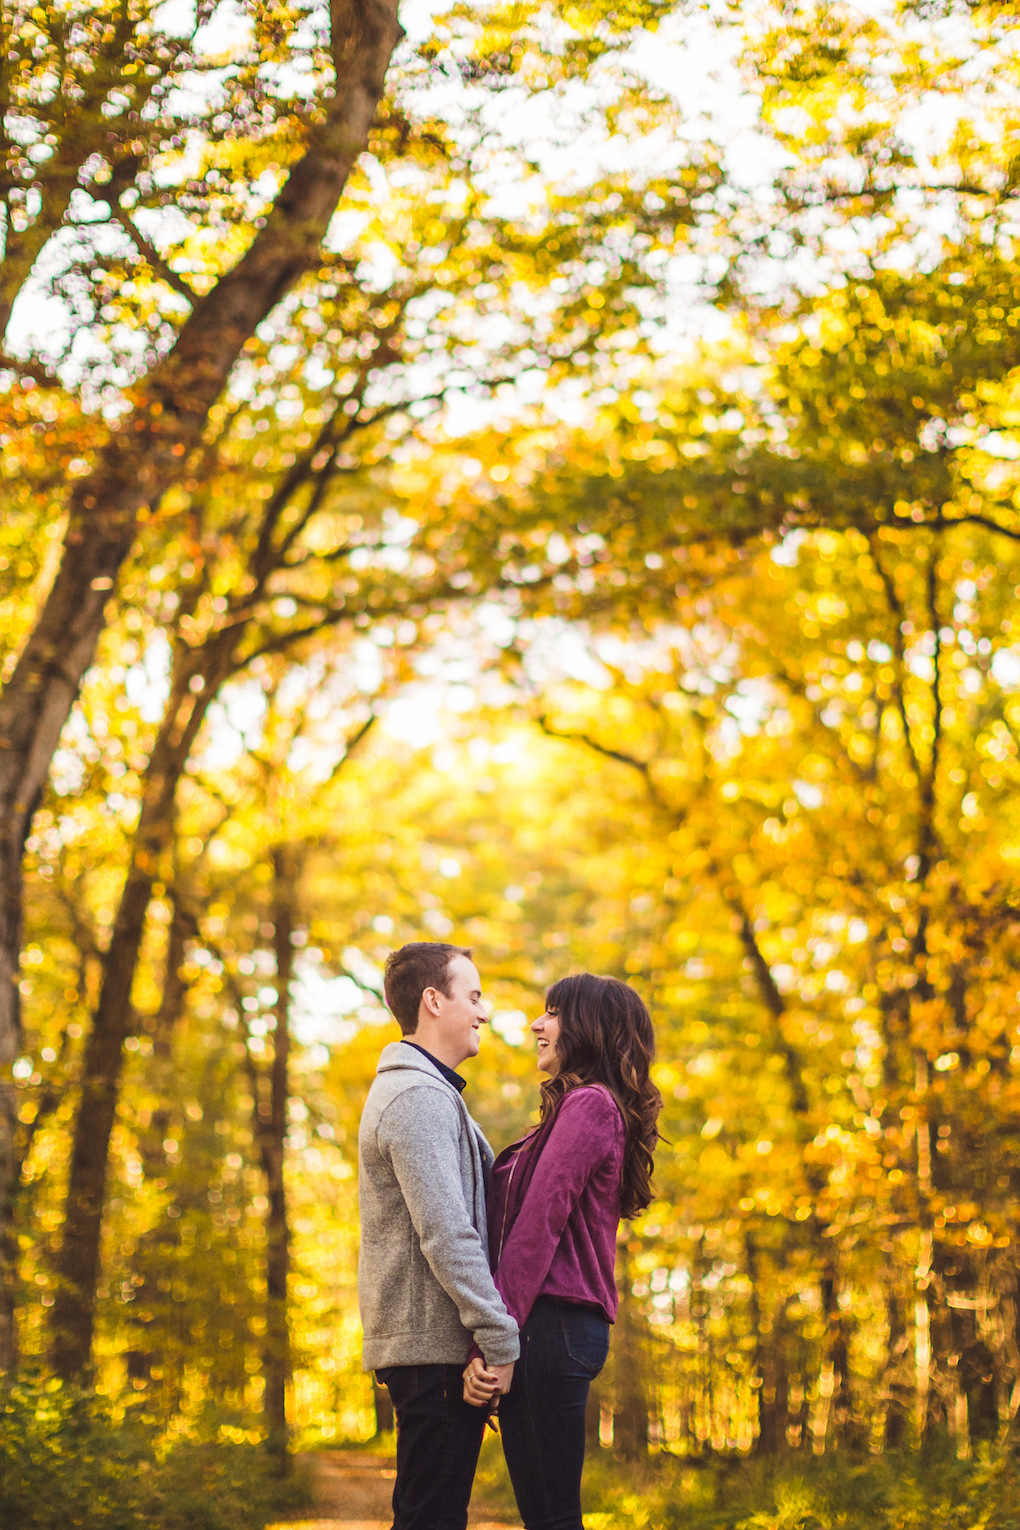 Busse Woods engagement photo session captured by Henington Photography. See more engagement photo ideas at CHItheeWED.com!